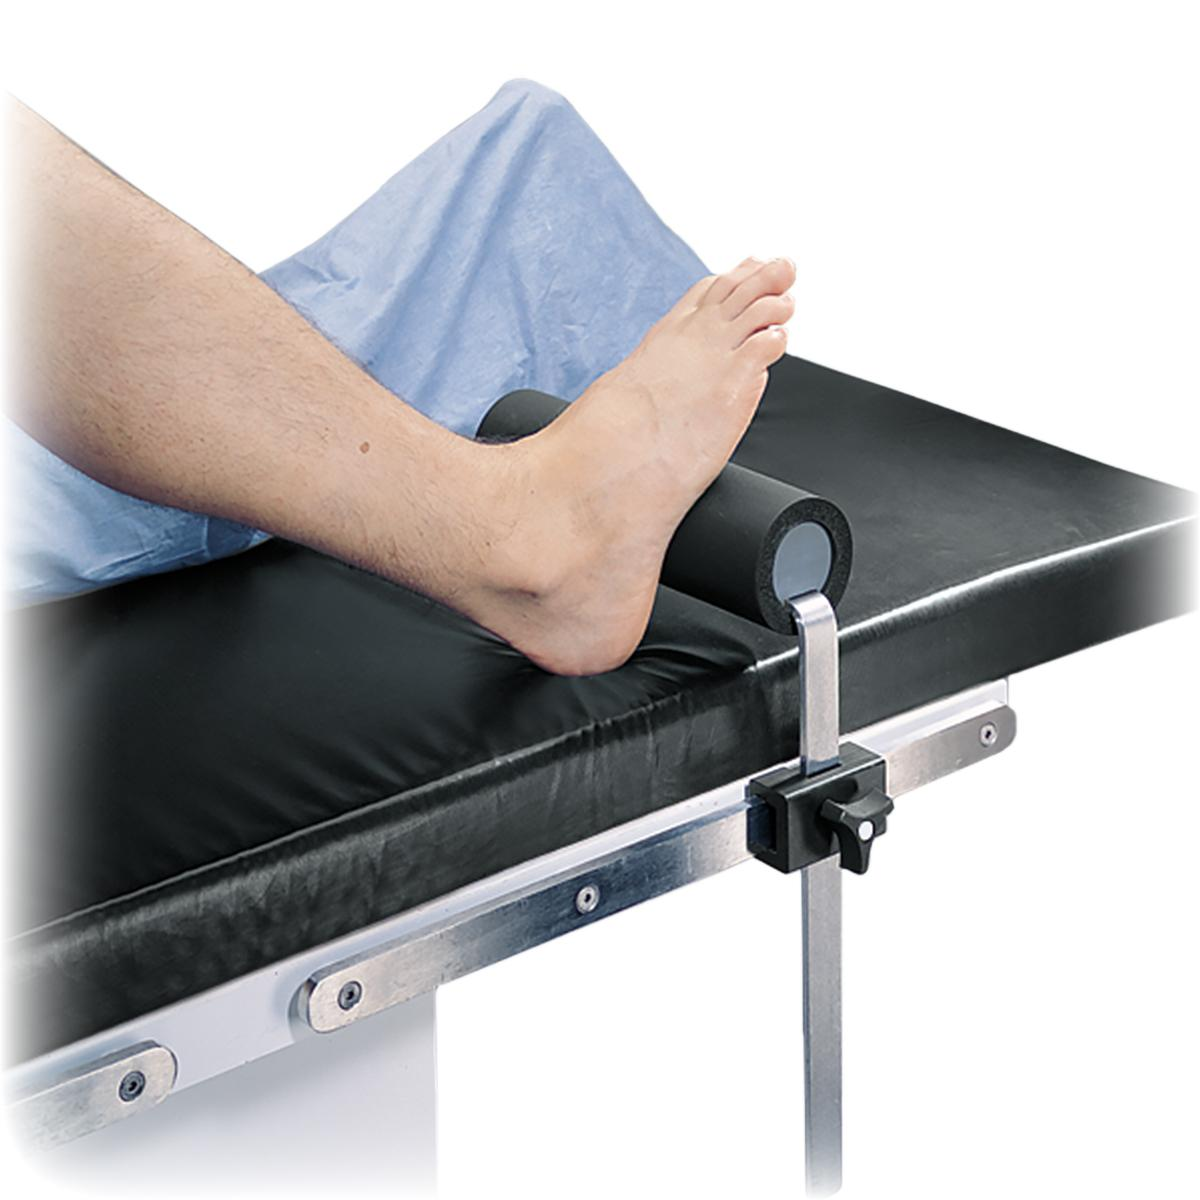 Total Knee Stabilizer, #O-TKS, installed on OR table with patient foot resting